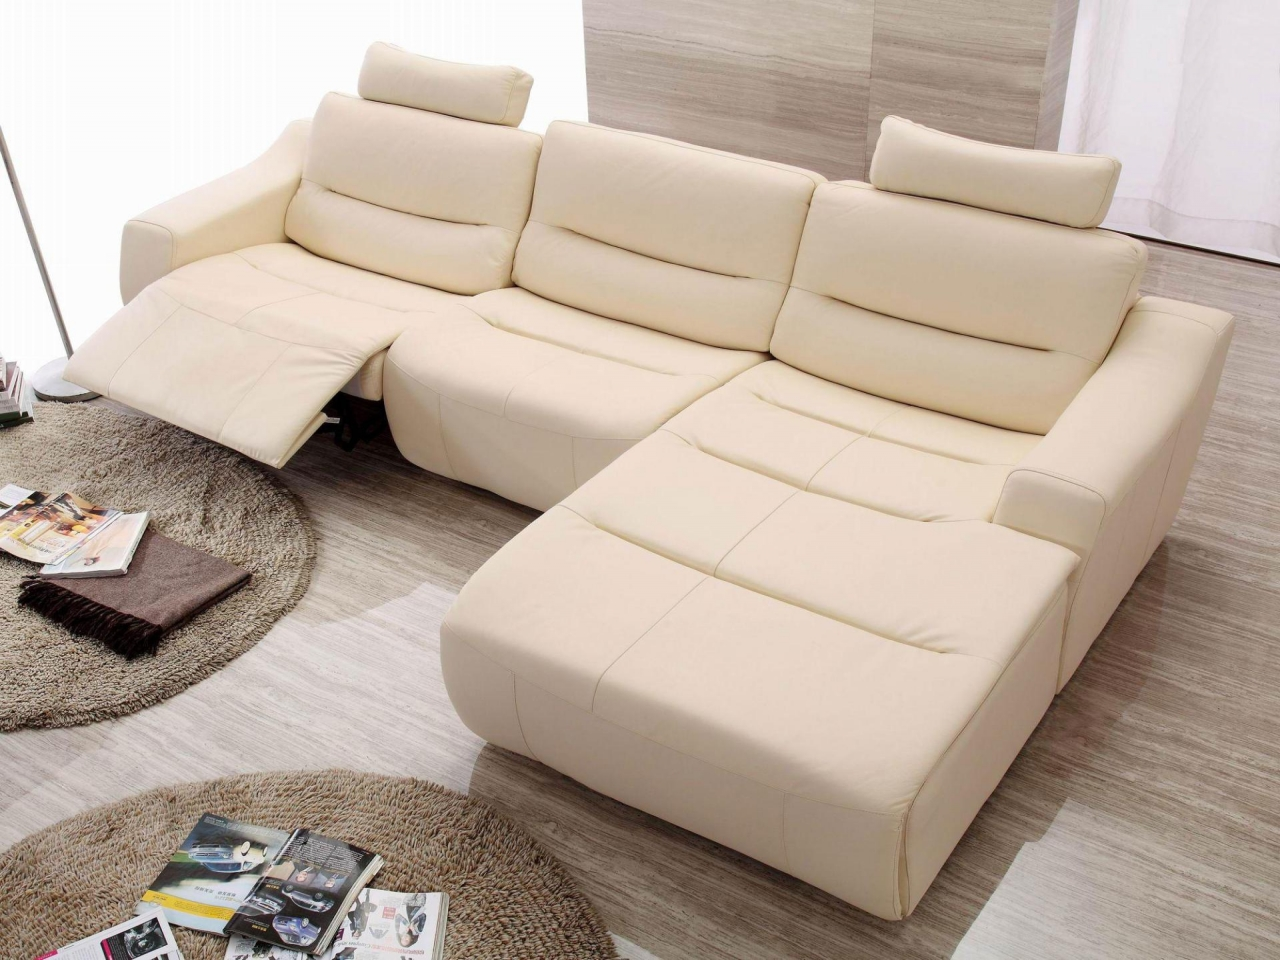 Fancy Reclining Sectional Sofas For Small Spaces 74 For Your Modern Sofa Inspiration with Reclining Sectional Sofas For Small Spaces